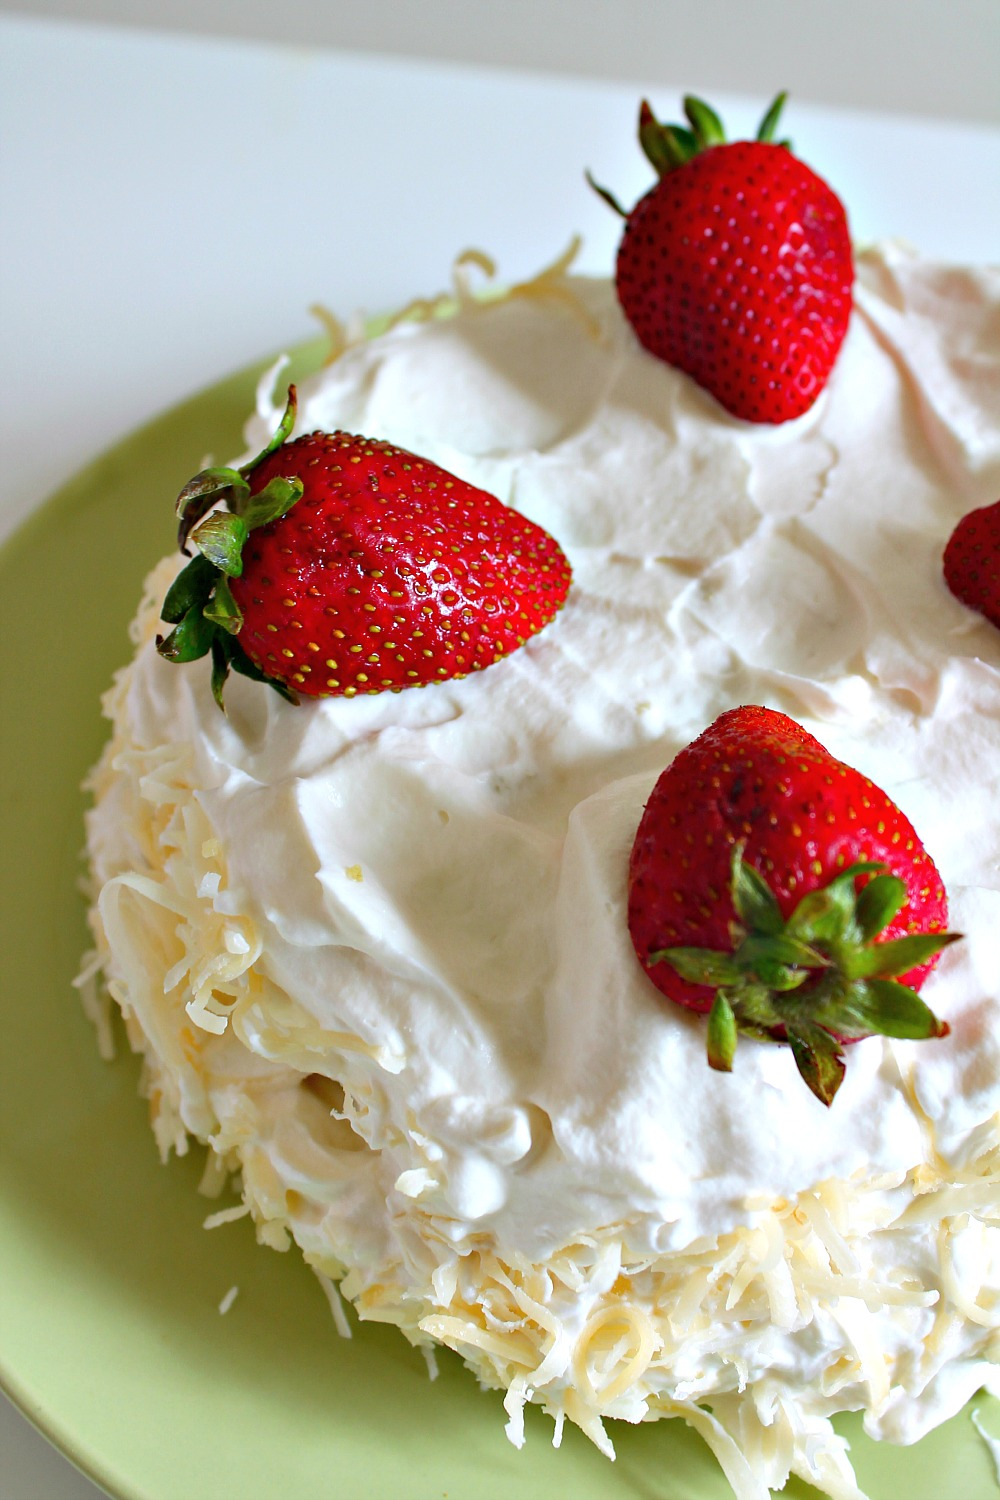 Steamed-Strawberry-Coconut-Poke-Cake 4--051015